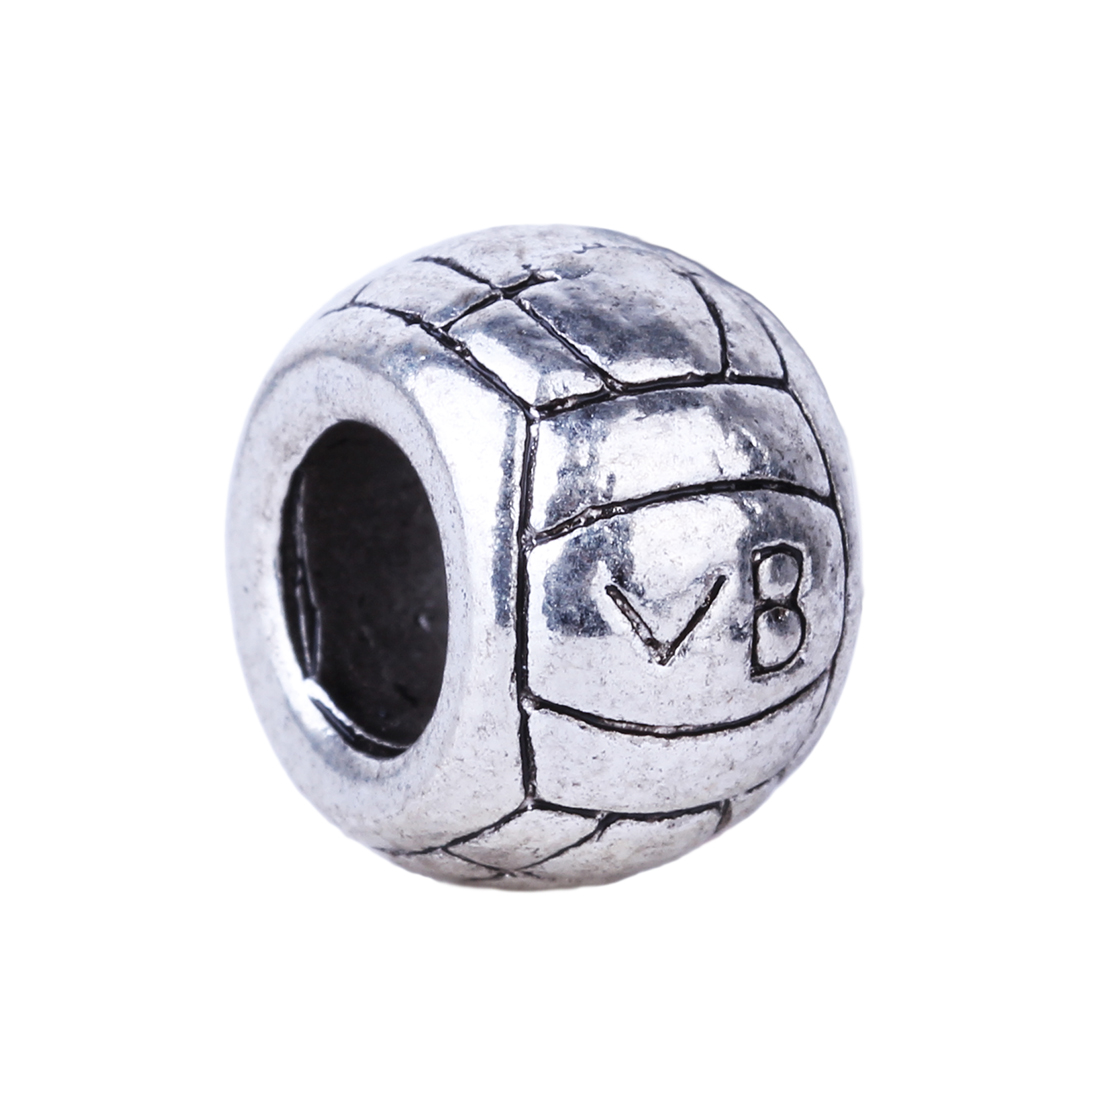 2016 New Cute Volleyball Beads Charms European Silver DIY Bead Fit Pandora BIAGI Bracelets & Bangles Women Jewelry(China (Mainland))